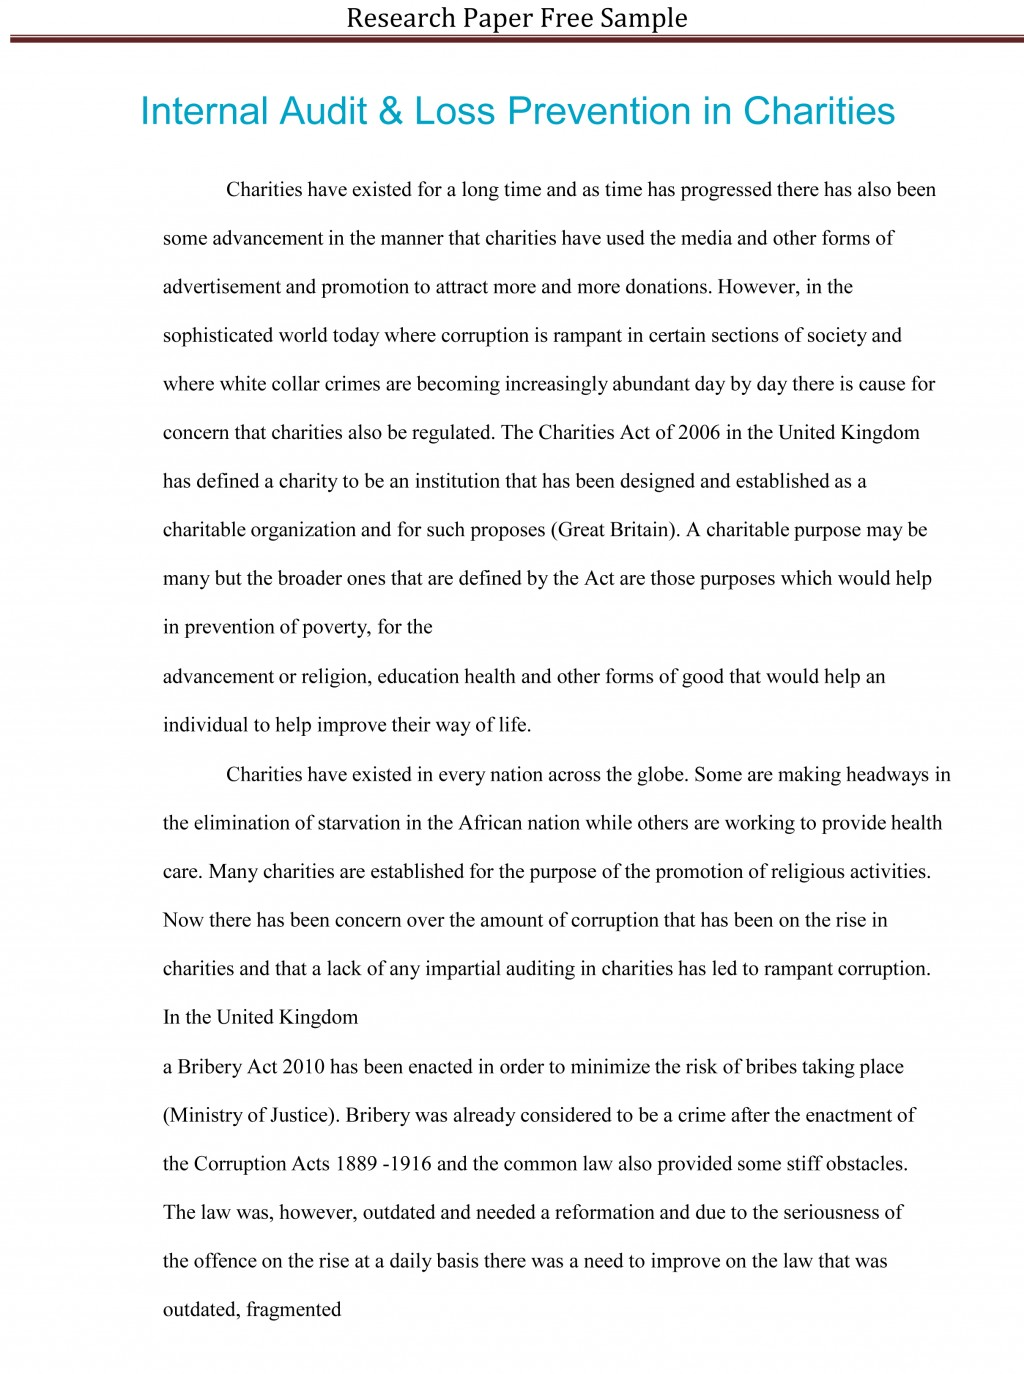 014 Example Of Introduction In Research Paper Help Writing Paragraph Unique About Business Bullying Cyberbullying Large